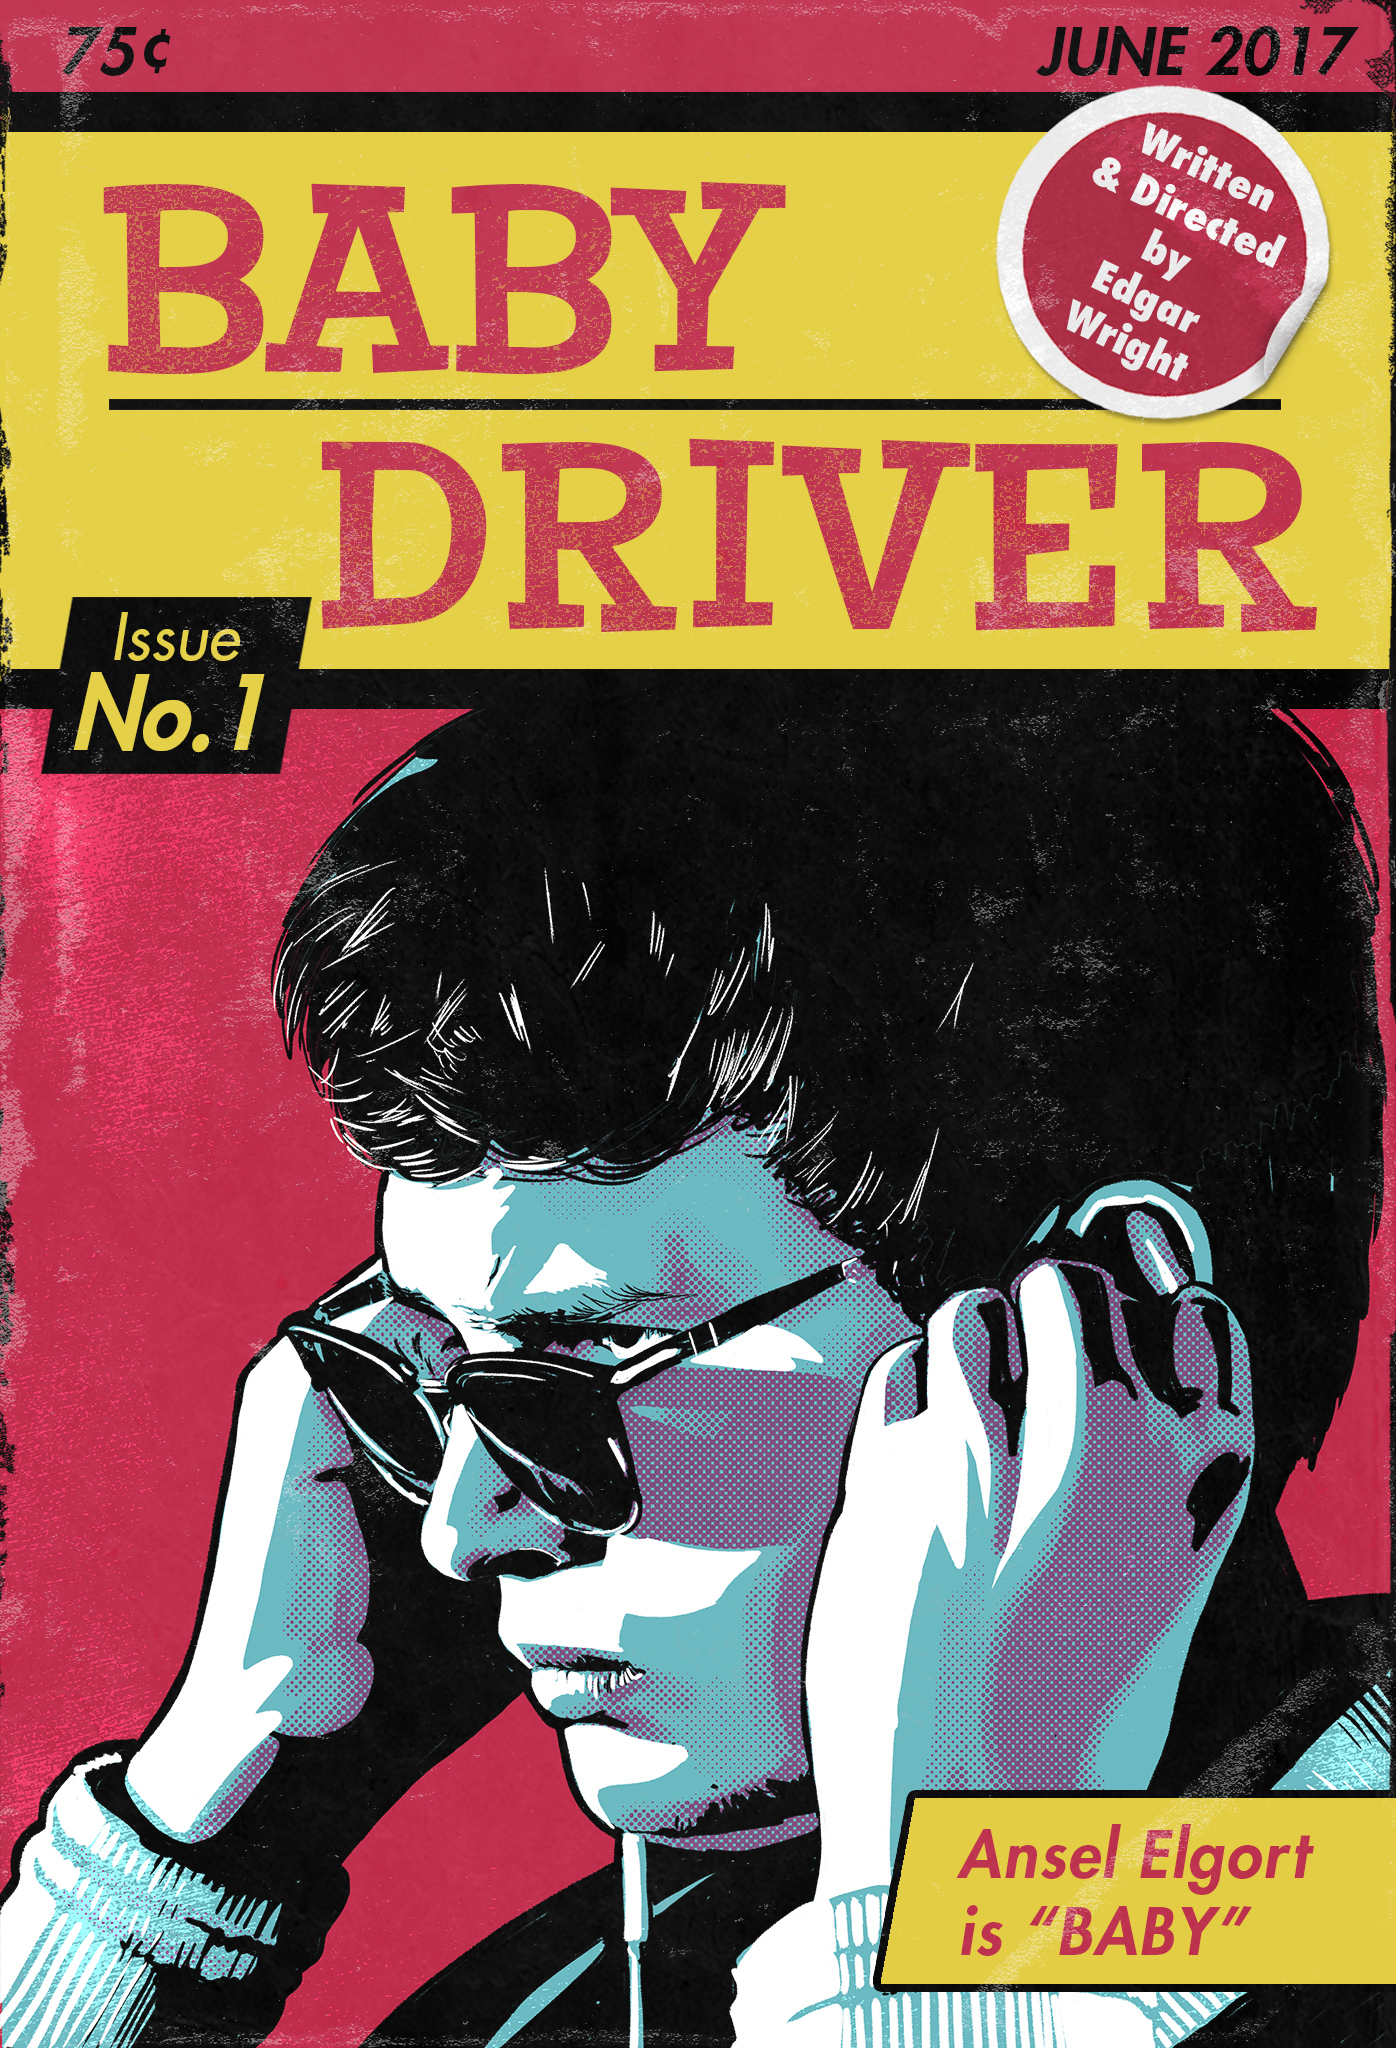 Baby Driver Poster No. 1 - Ansel Elgort